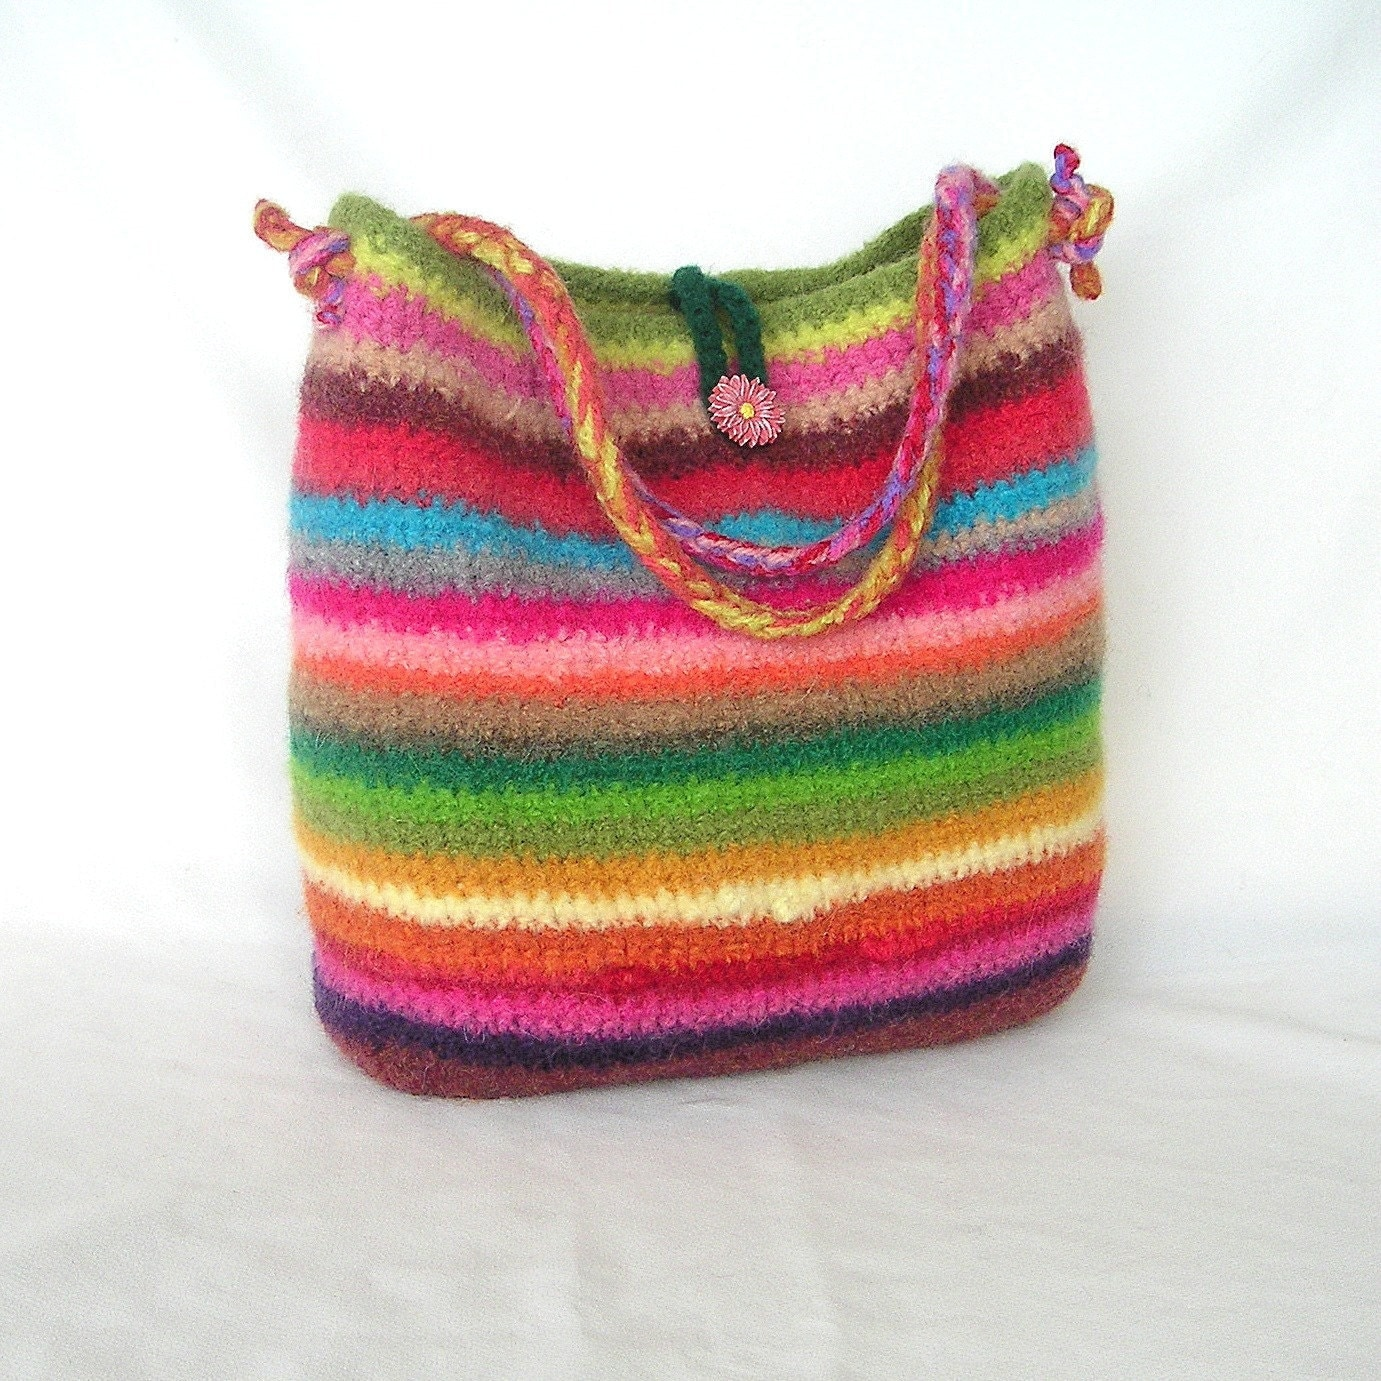 Crochet Rainbow Bag : Rainbow Felted Bag Crochet Pattern by GraceKnittingPattern on Etsy